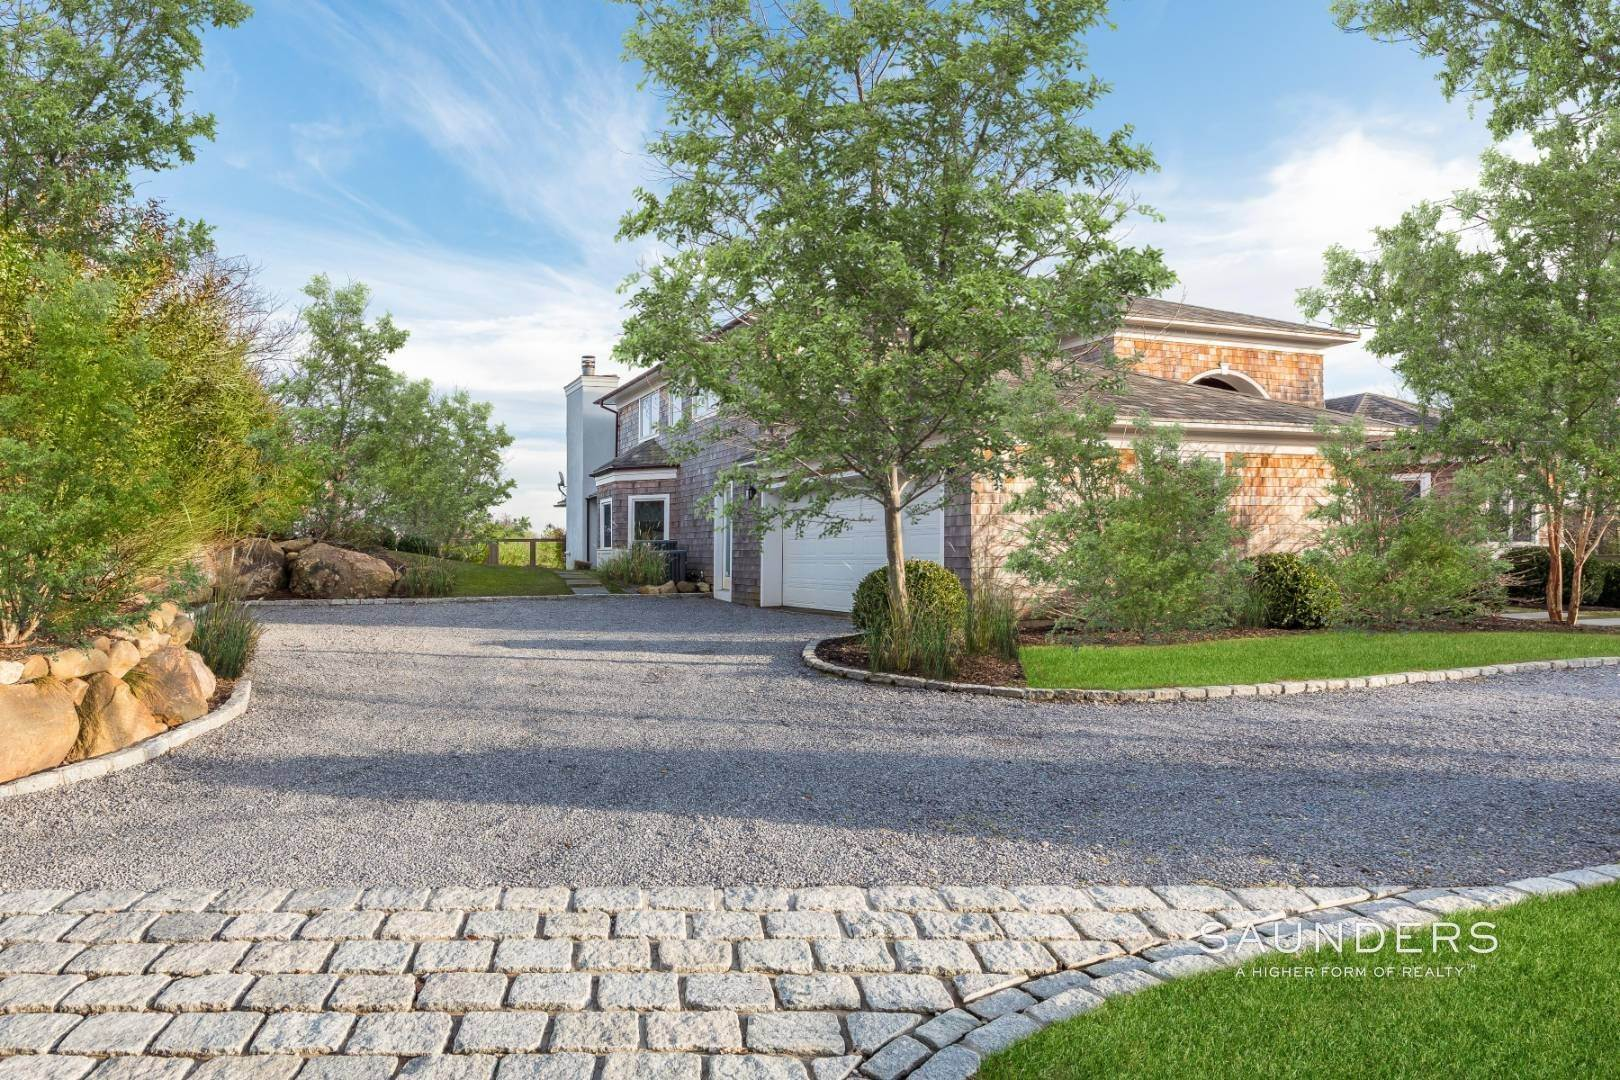 2. Single Family Homes for Sale at Turnkey Masterpiece On The Montauk Golf Course - 5,000+sqft 38 Fairlawn Dr, Montauk, East Hampton Town, NY 11954